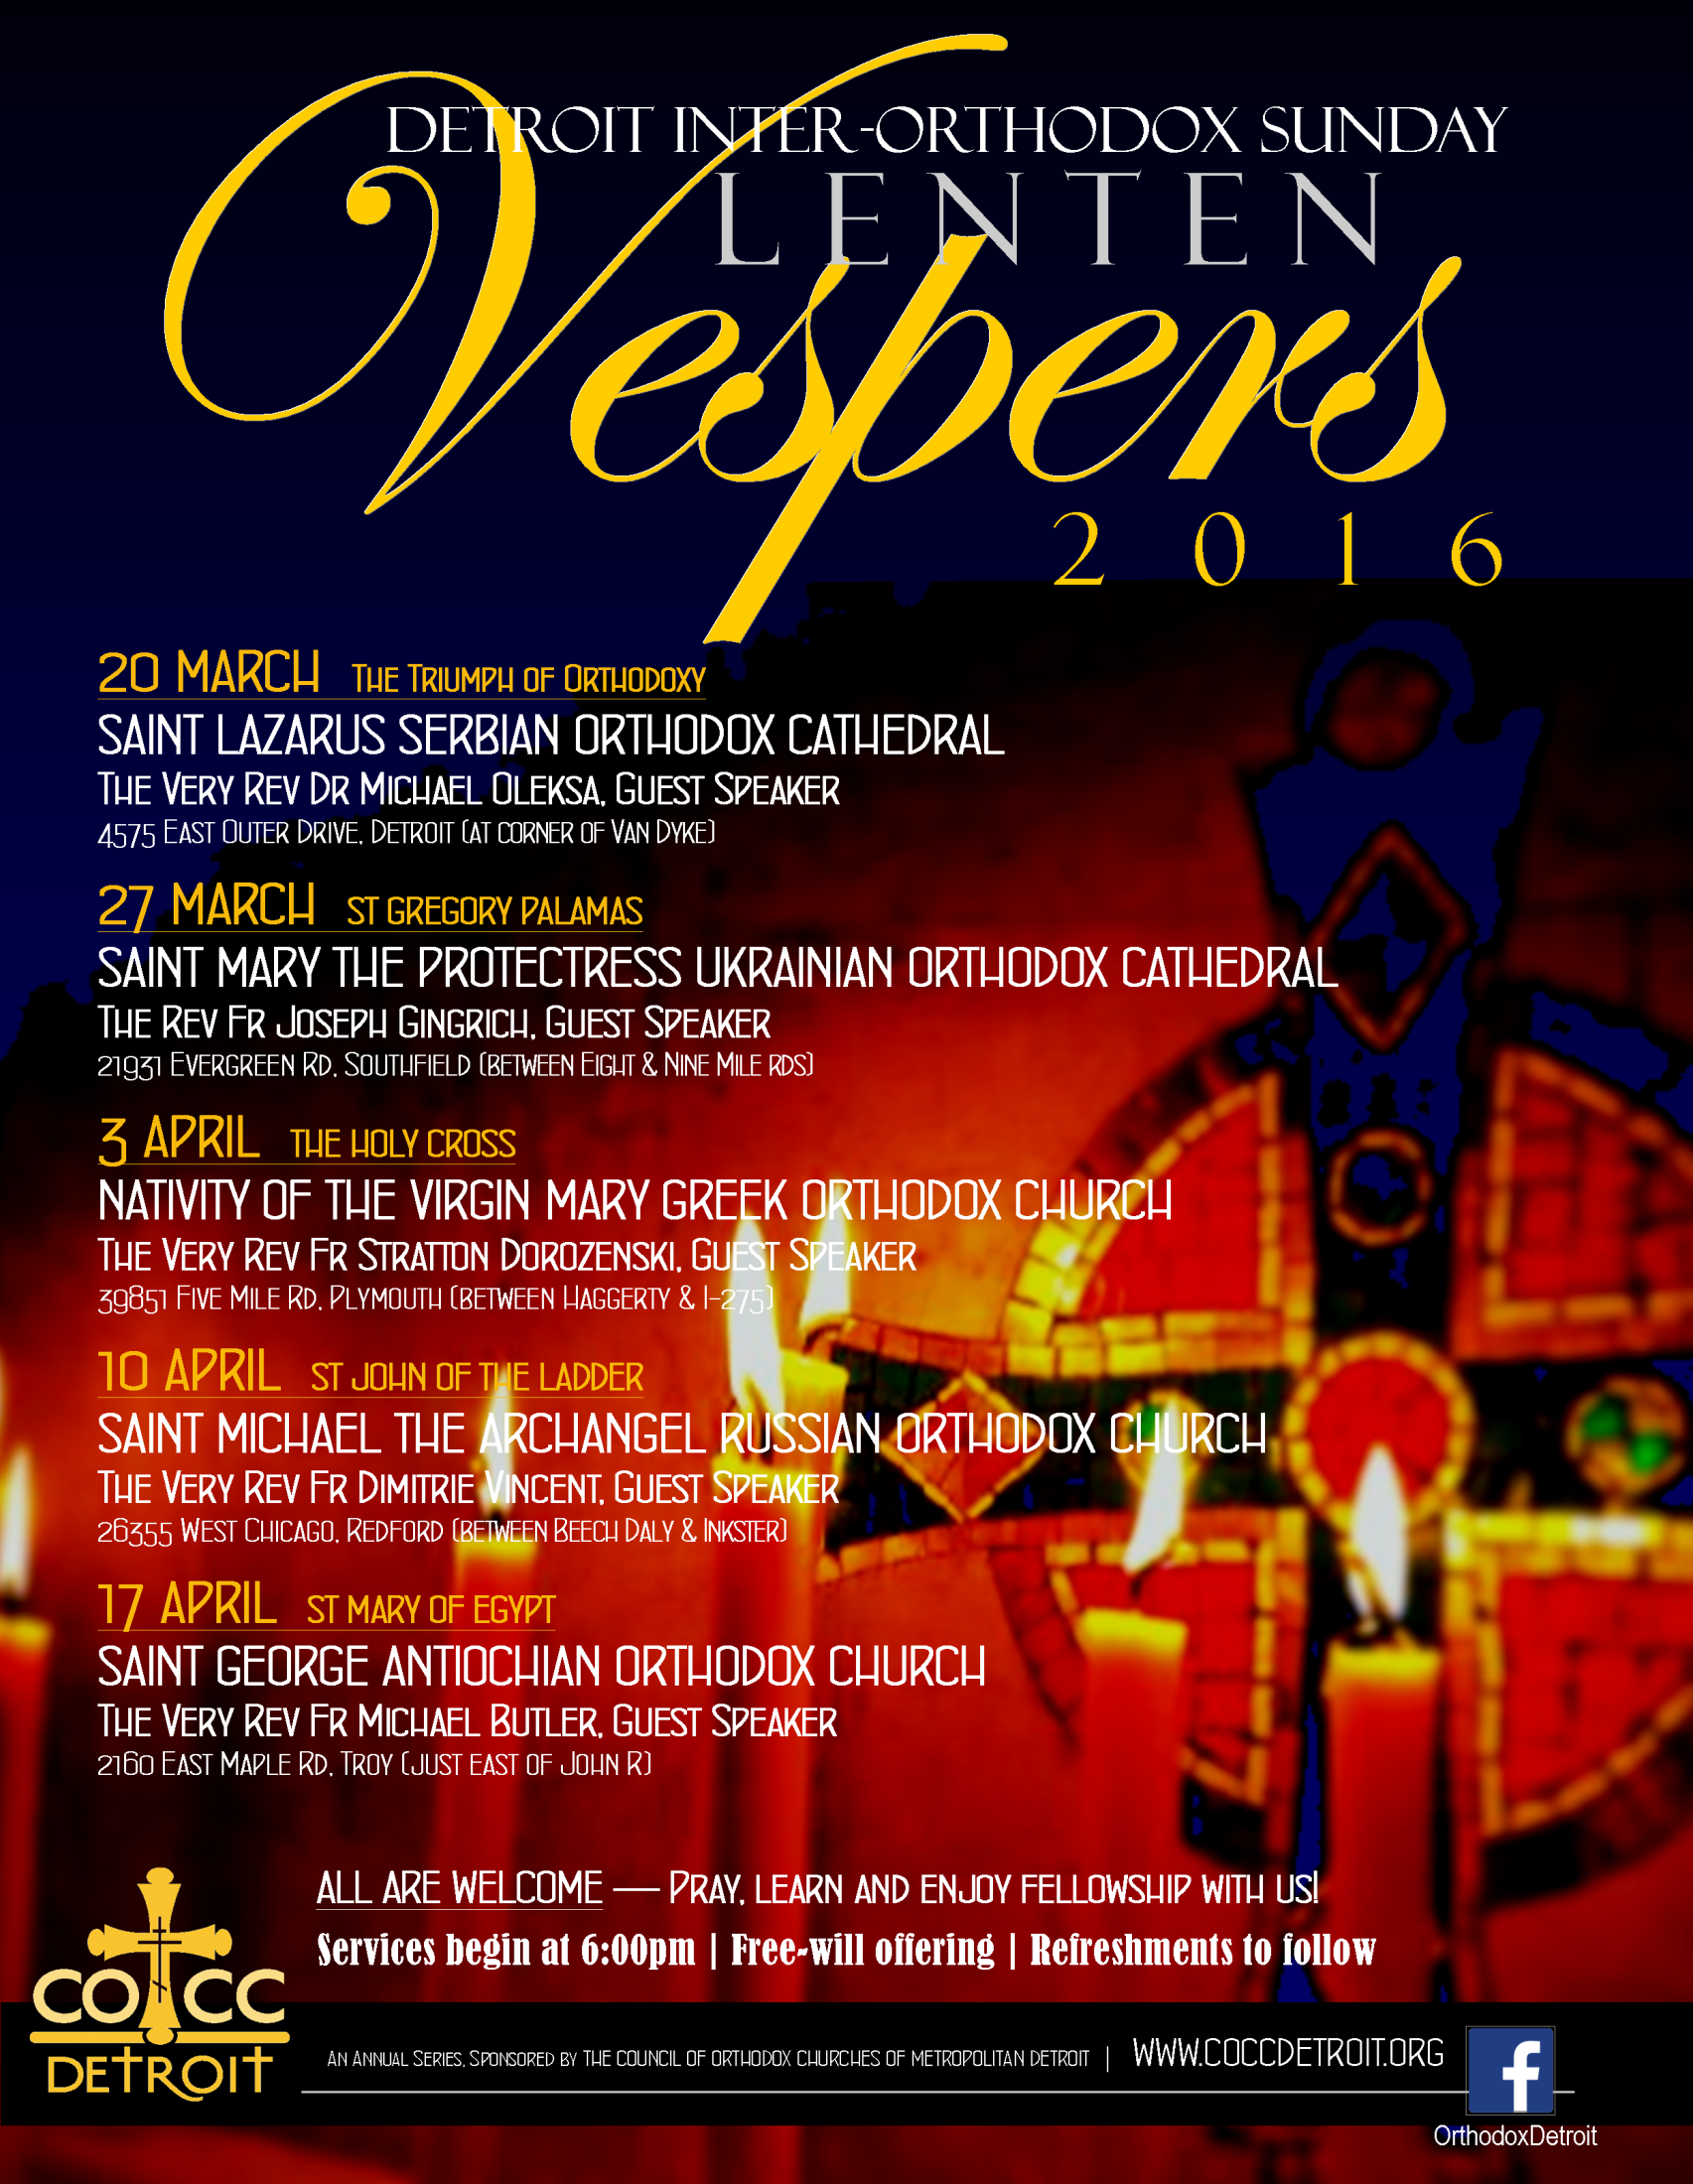 Council of Orthodox Christian Churches to sponsor Sunday Lenten Vespers @ Varied